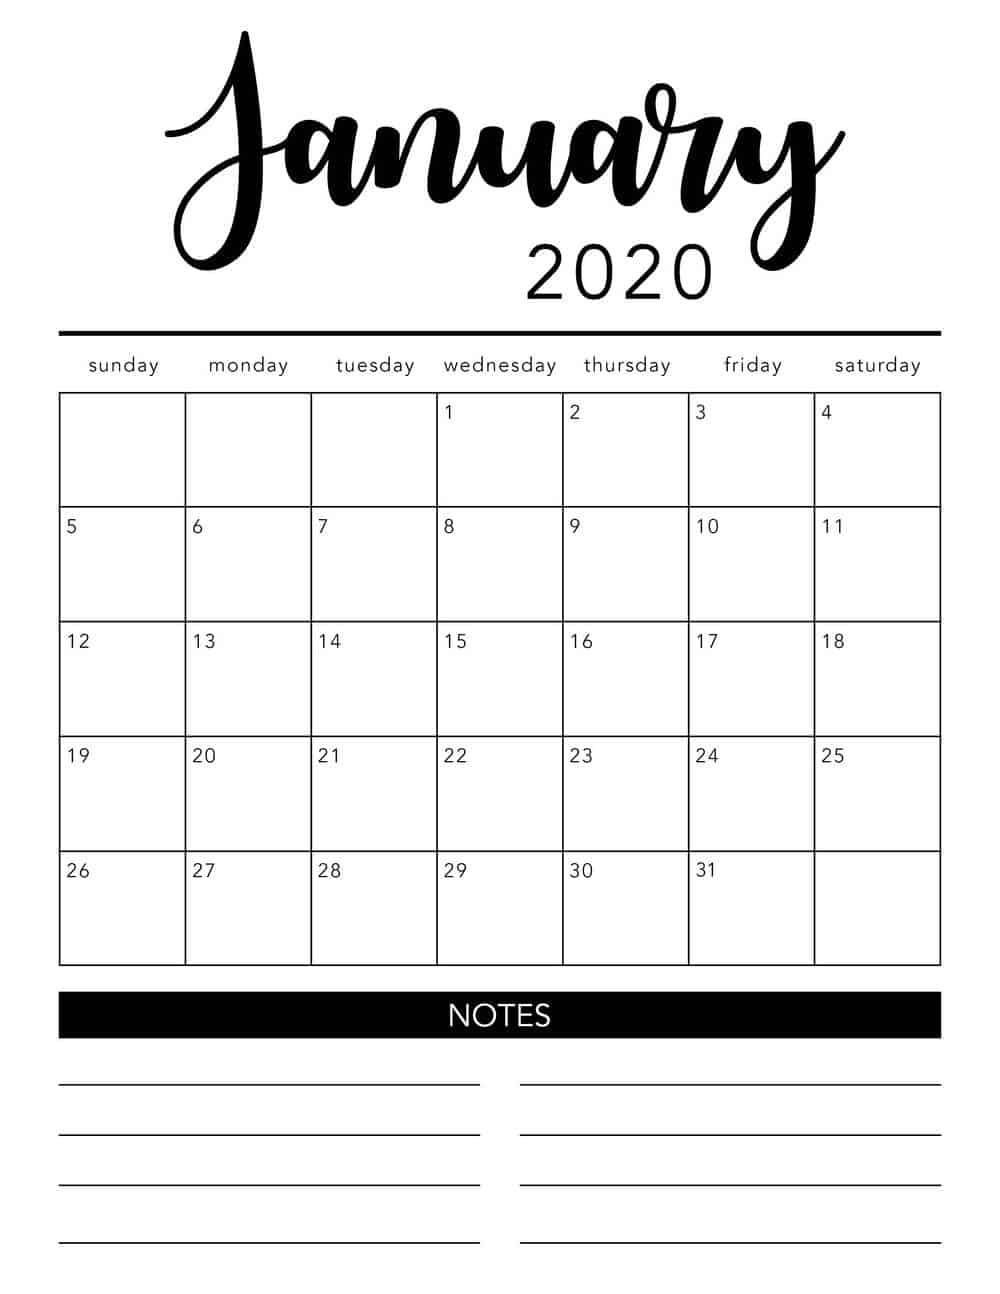 How To Printable Calendar Monthly Fill In In 2020 Calendars To Fill In And Print For Free